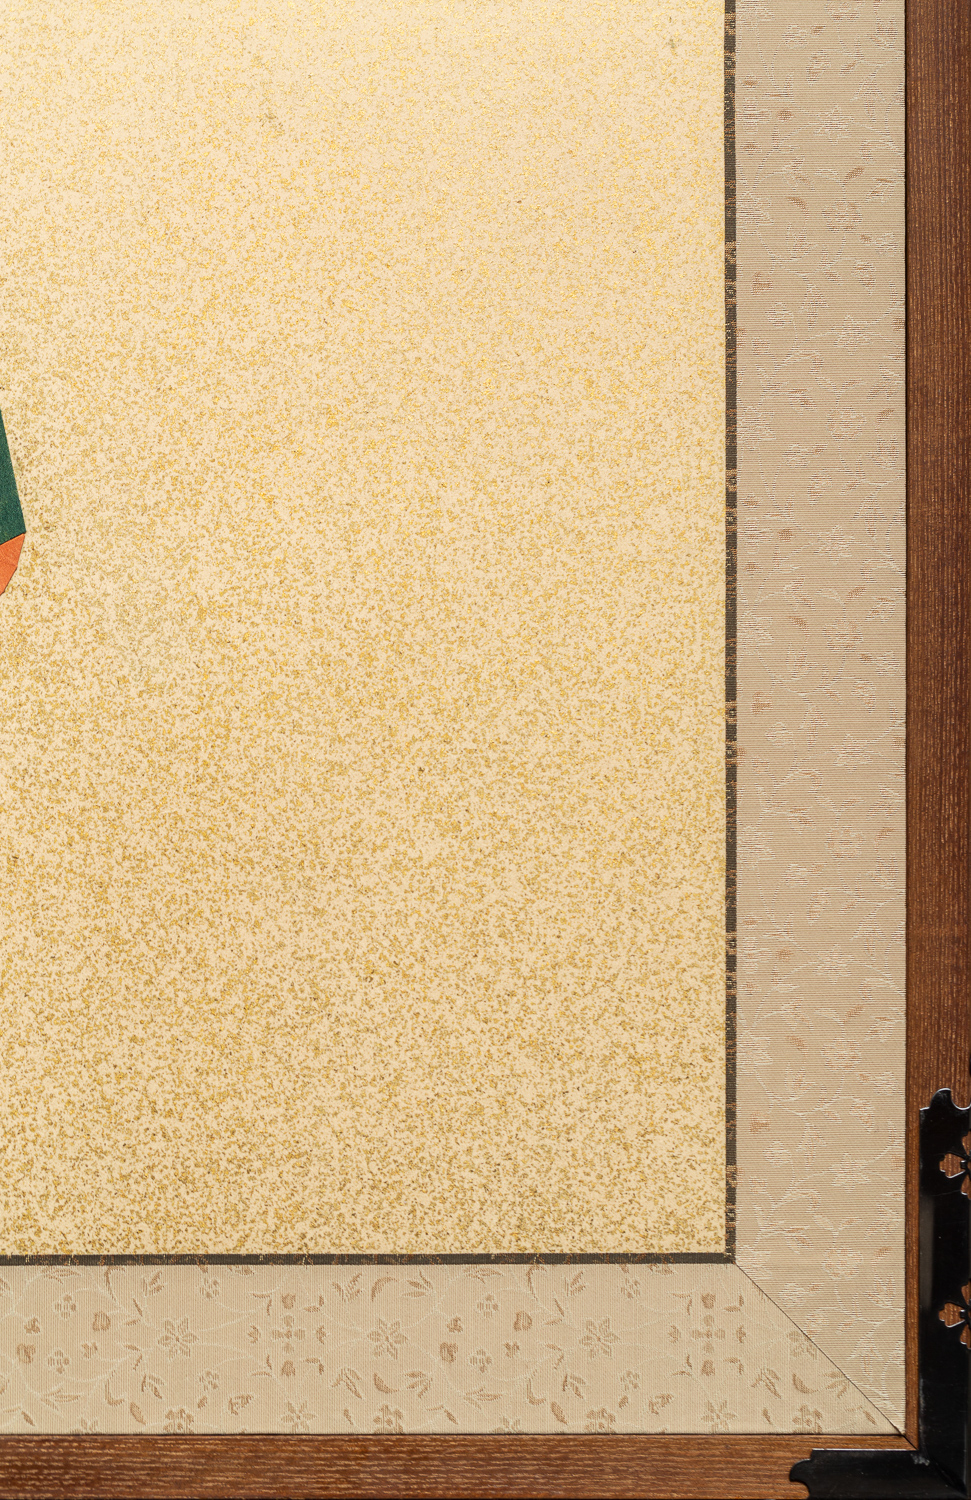 Japanese Two Panel Screen: Early 20th Century Kimono Fabric Mounted on Mid-20th Century Screen